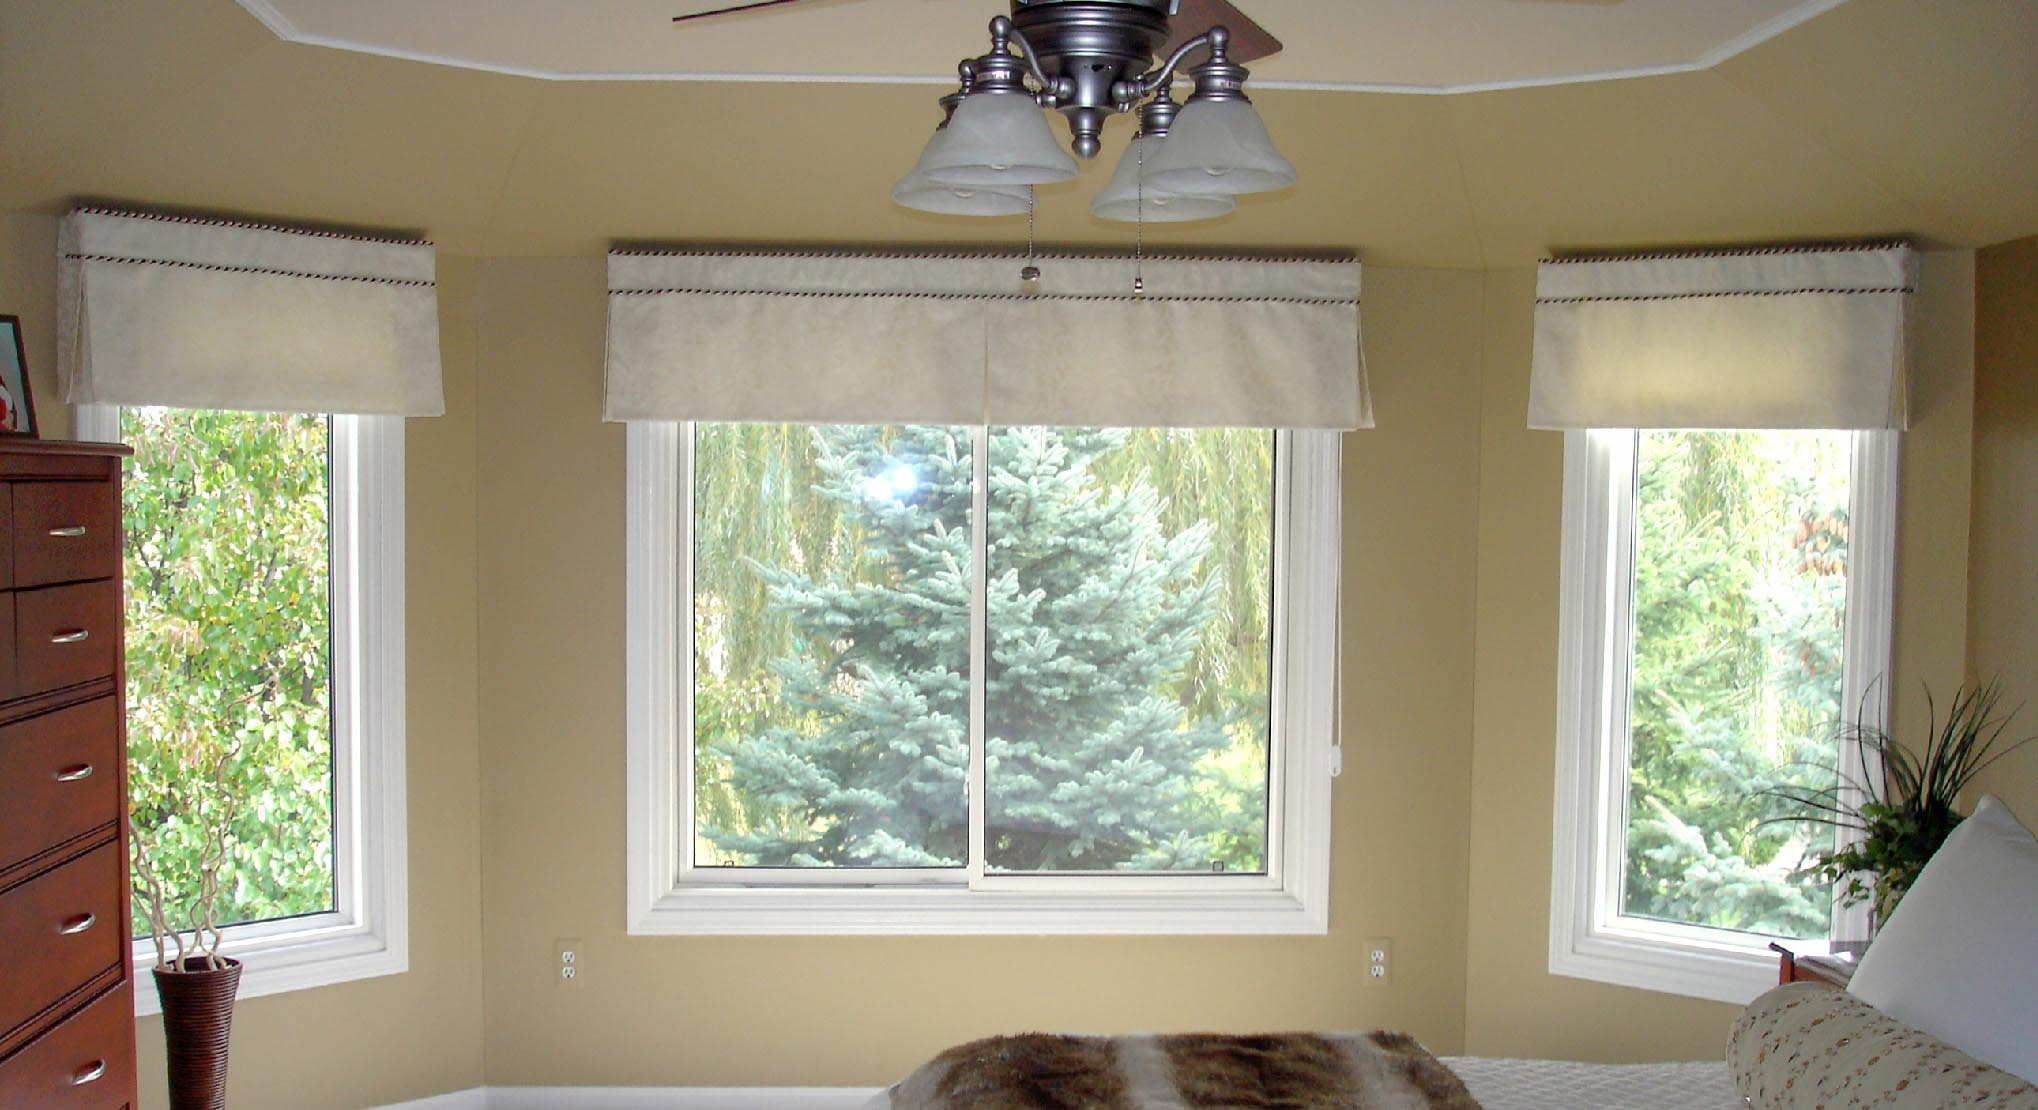 Bedroom valances for windows window treatments design ideas Drapery treatments ideas